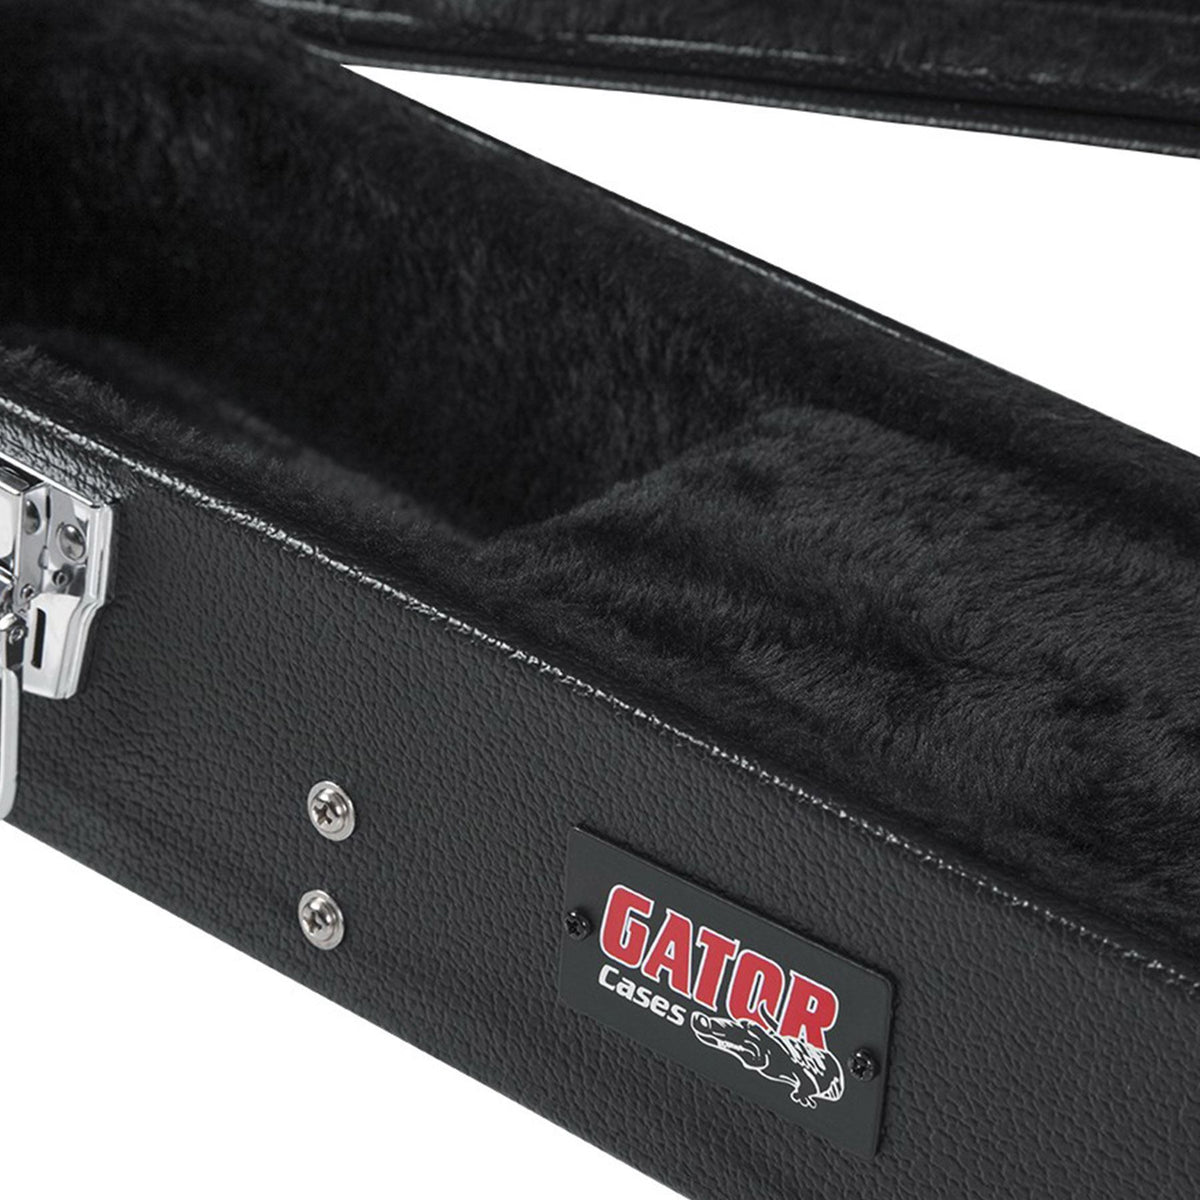 Gator Cases Wood Case for Gibson Les Paul Deluxe, Junior, Menace Guitars